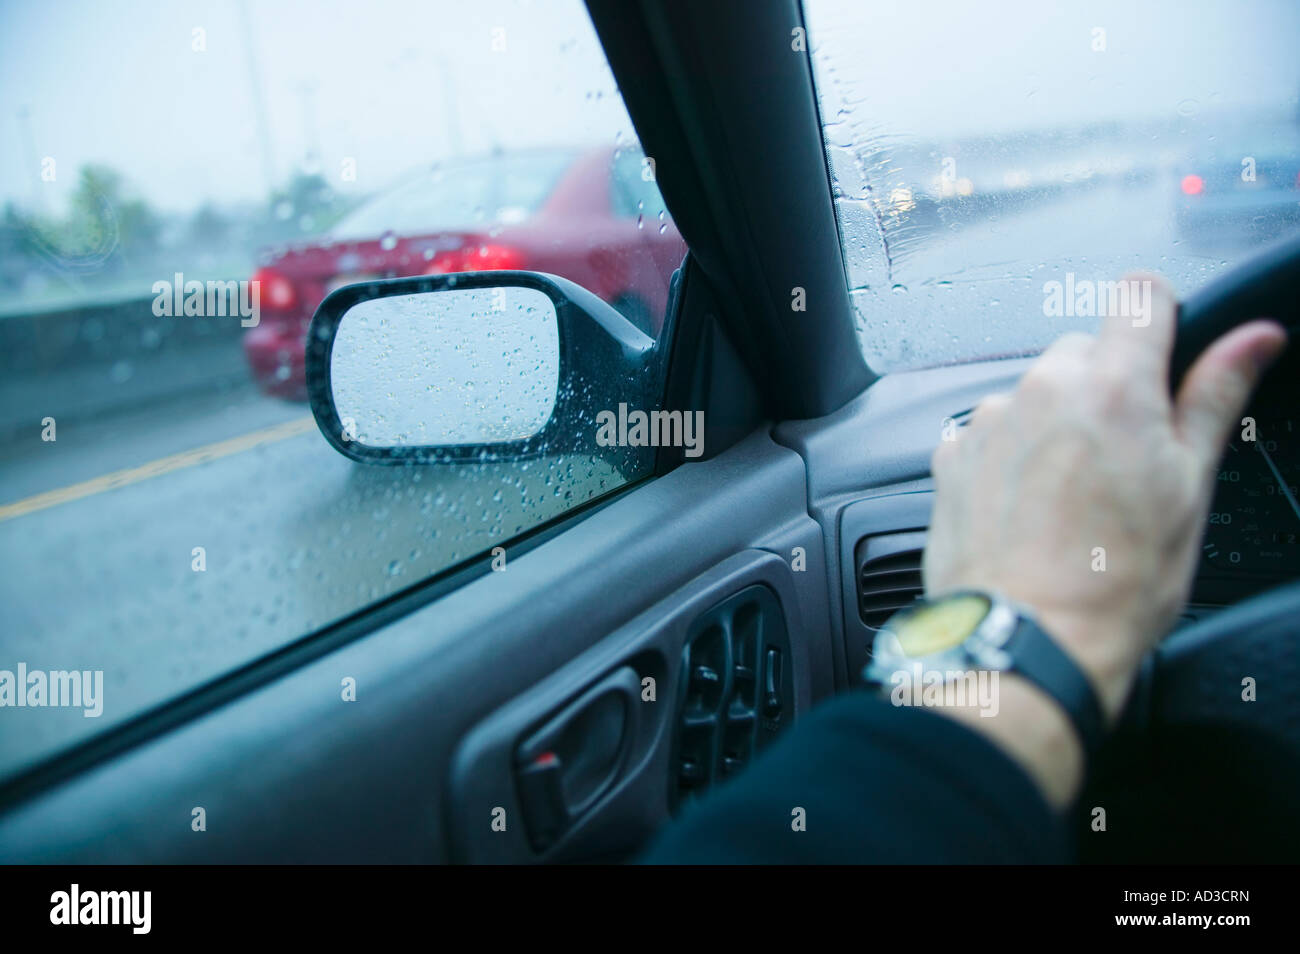 Drivers arm and view through windows on a highway in the rain - Stock Image